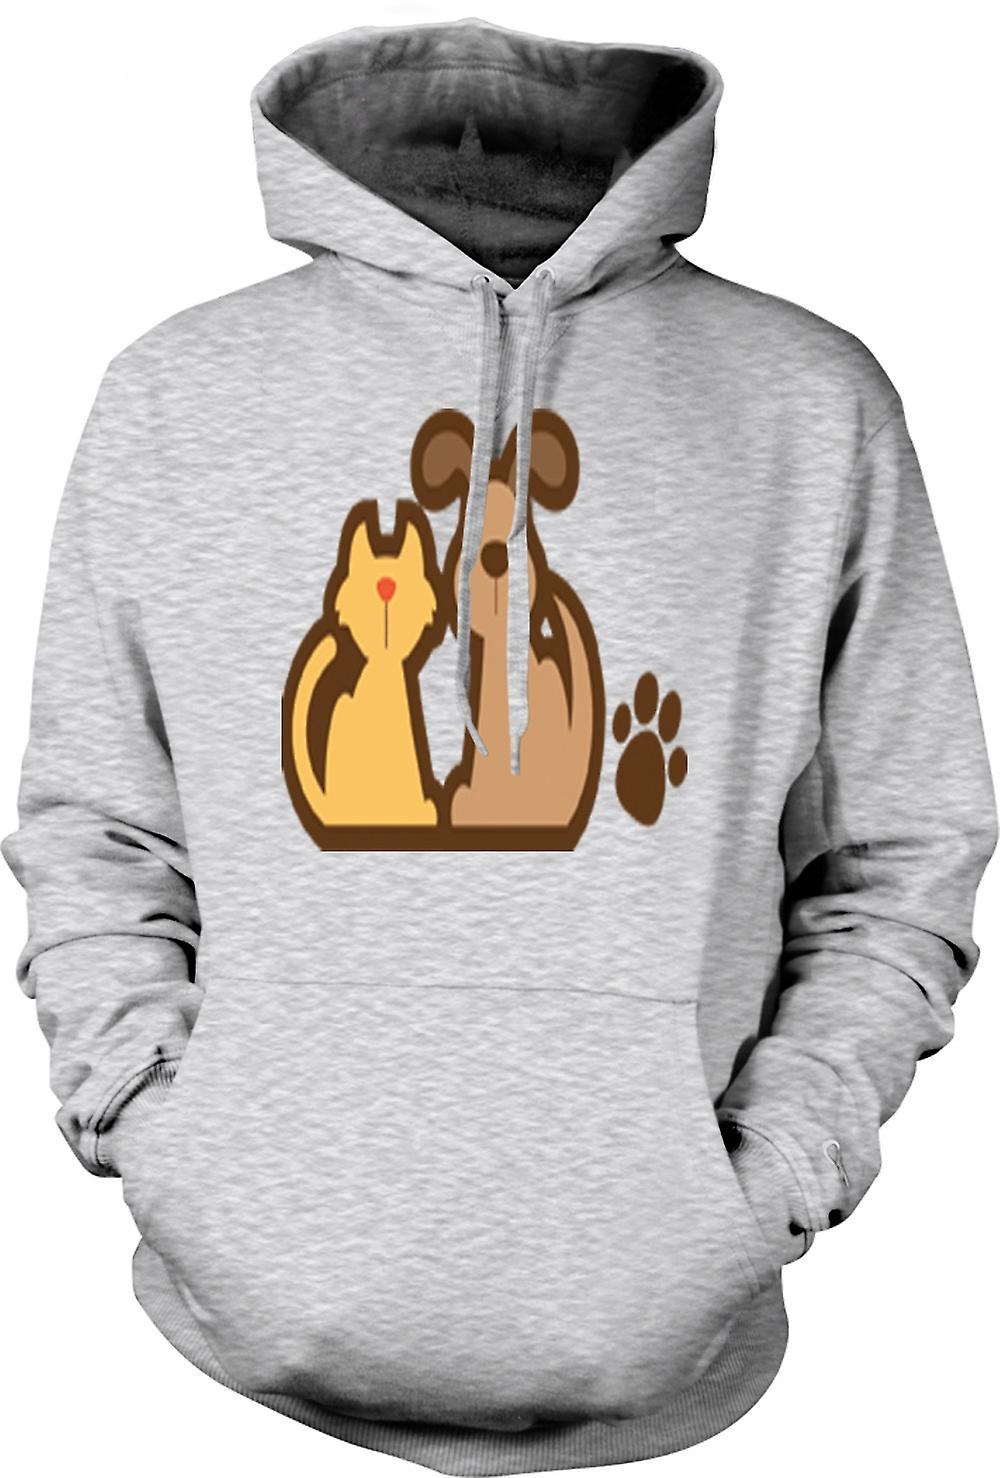 Mens Hoodie - Cat And Dog Cartoon Drawing